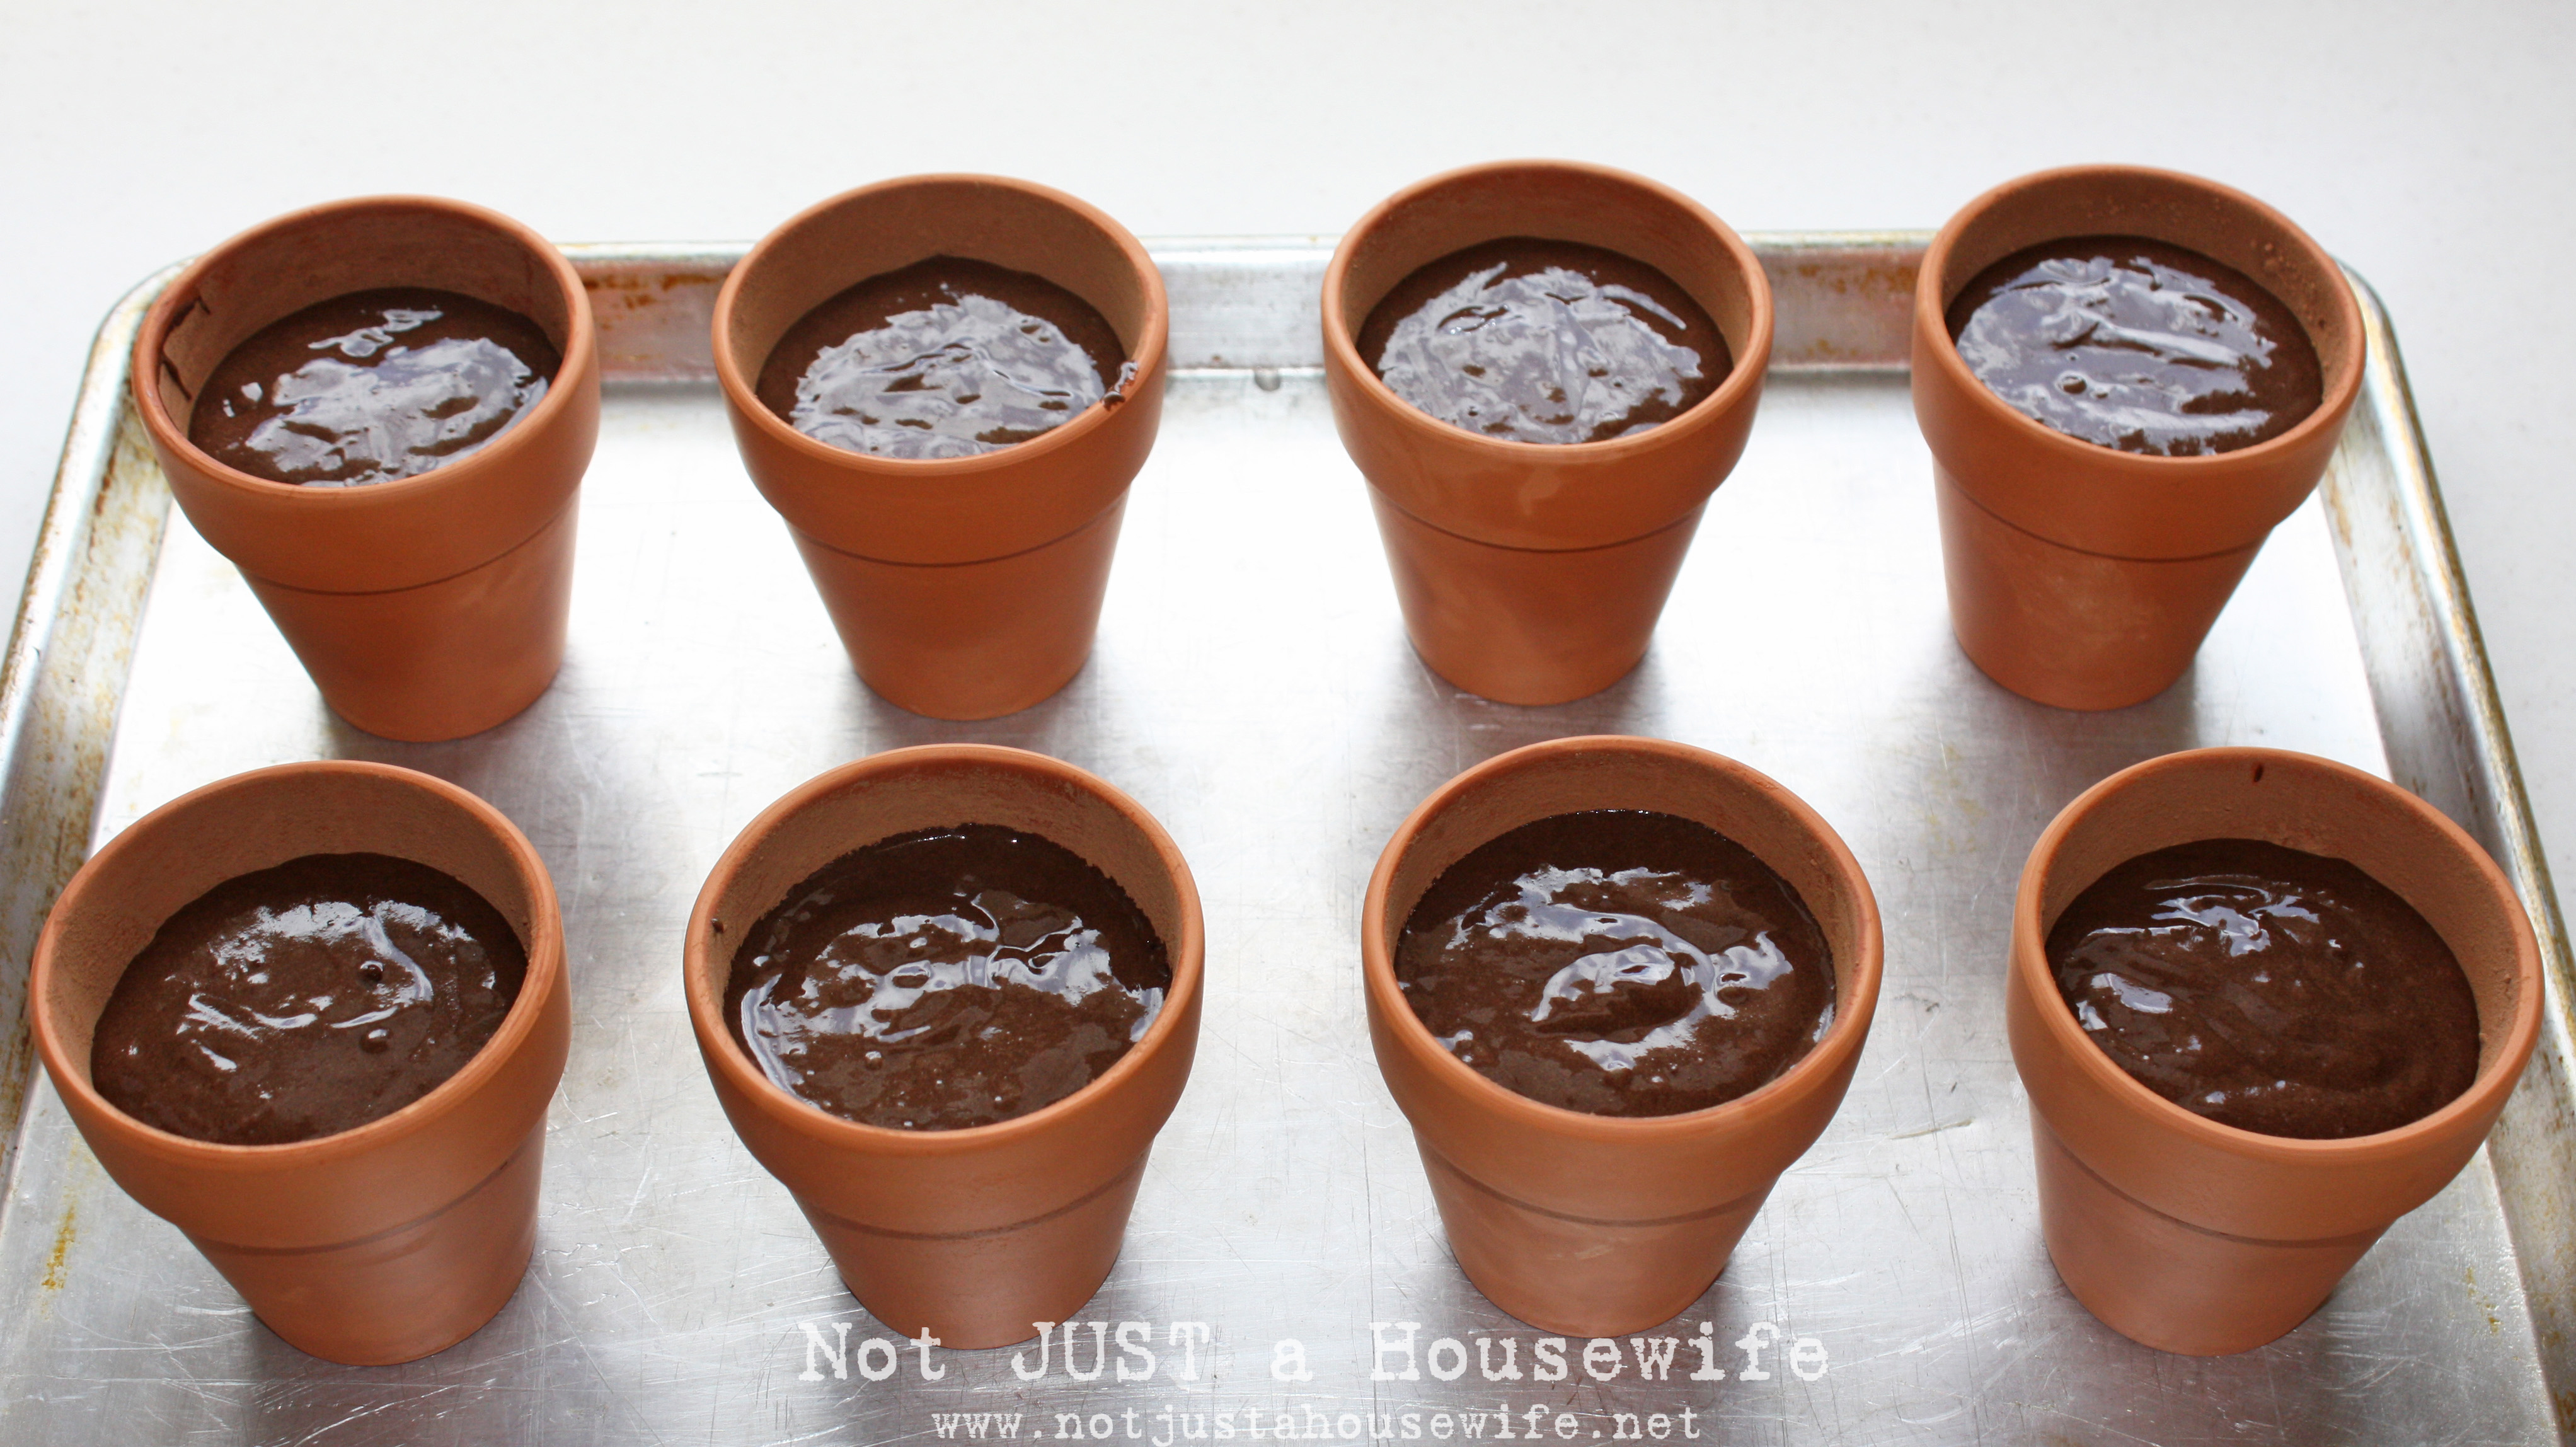 Flower Pot Cakes Not Just A Housewife